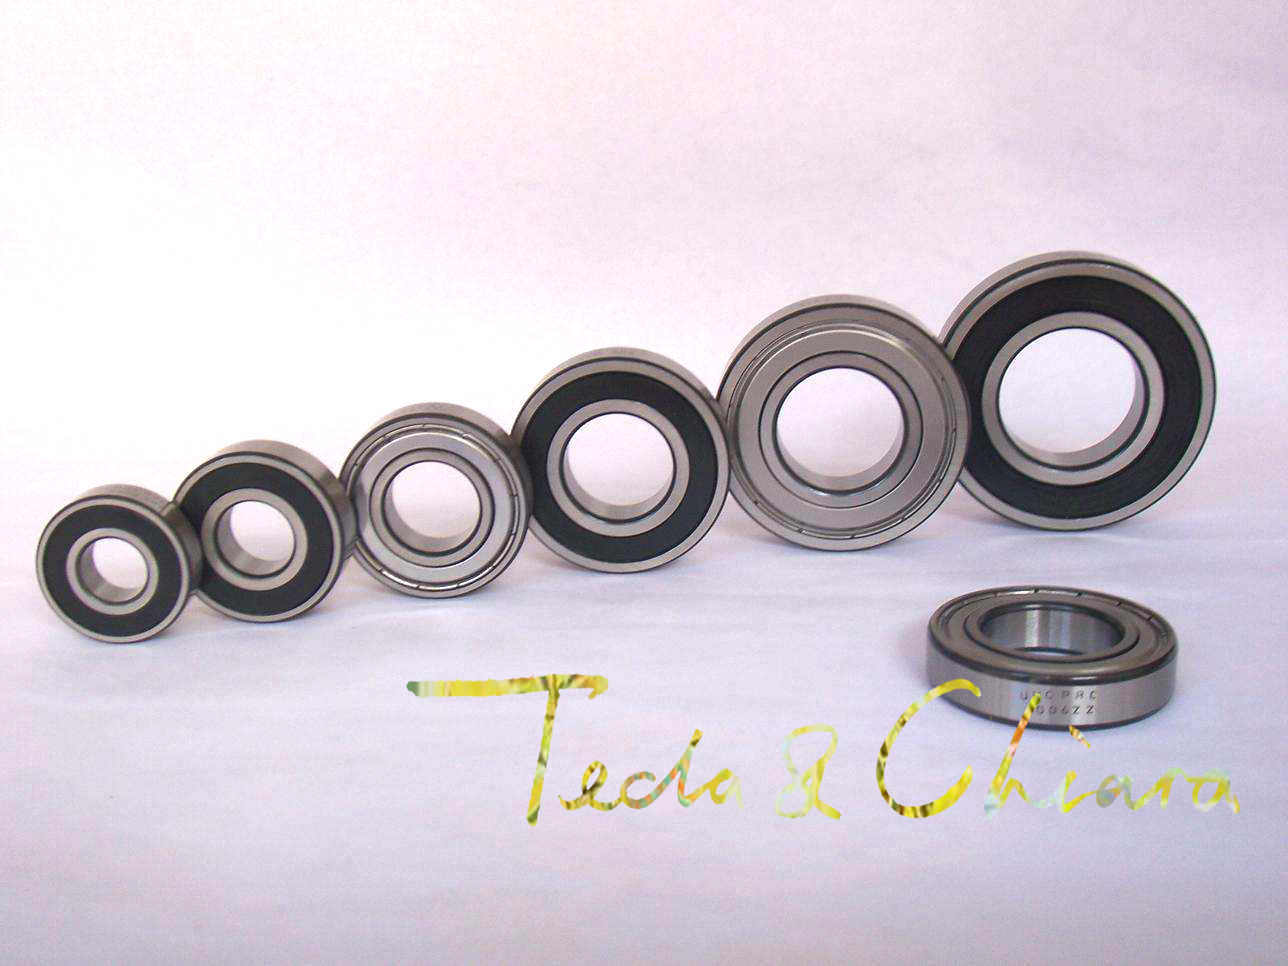 6707 6707ZZ <font><b>6707RS</b></font> 6707-2Z 6707Z 6707-2RS ZZ RS RZ 2RZ Deep Groove Ball Bearings 35 x 44 x 5mm High Quality image